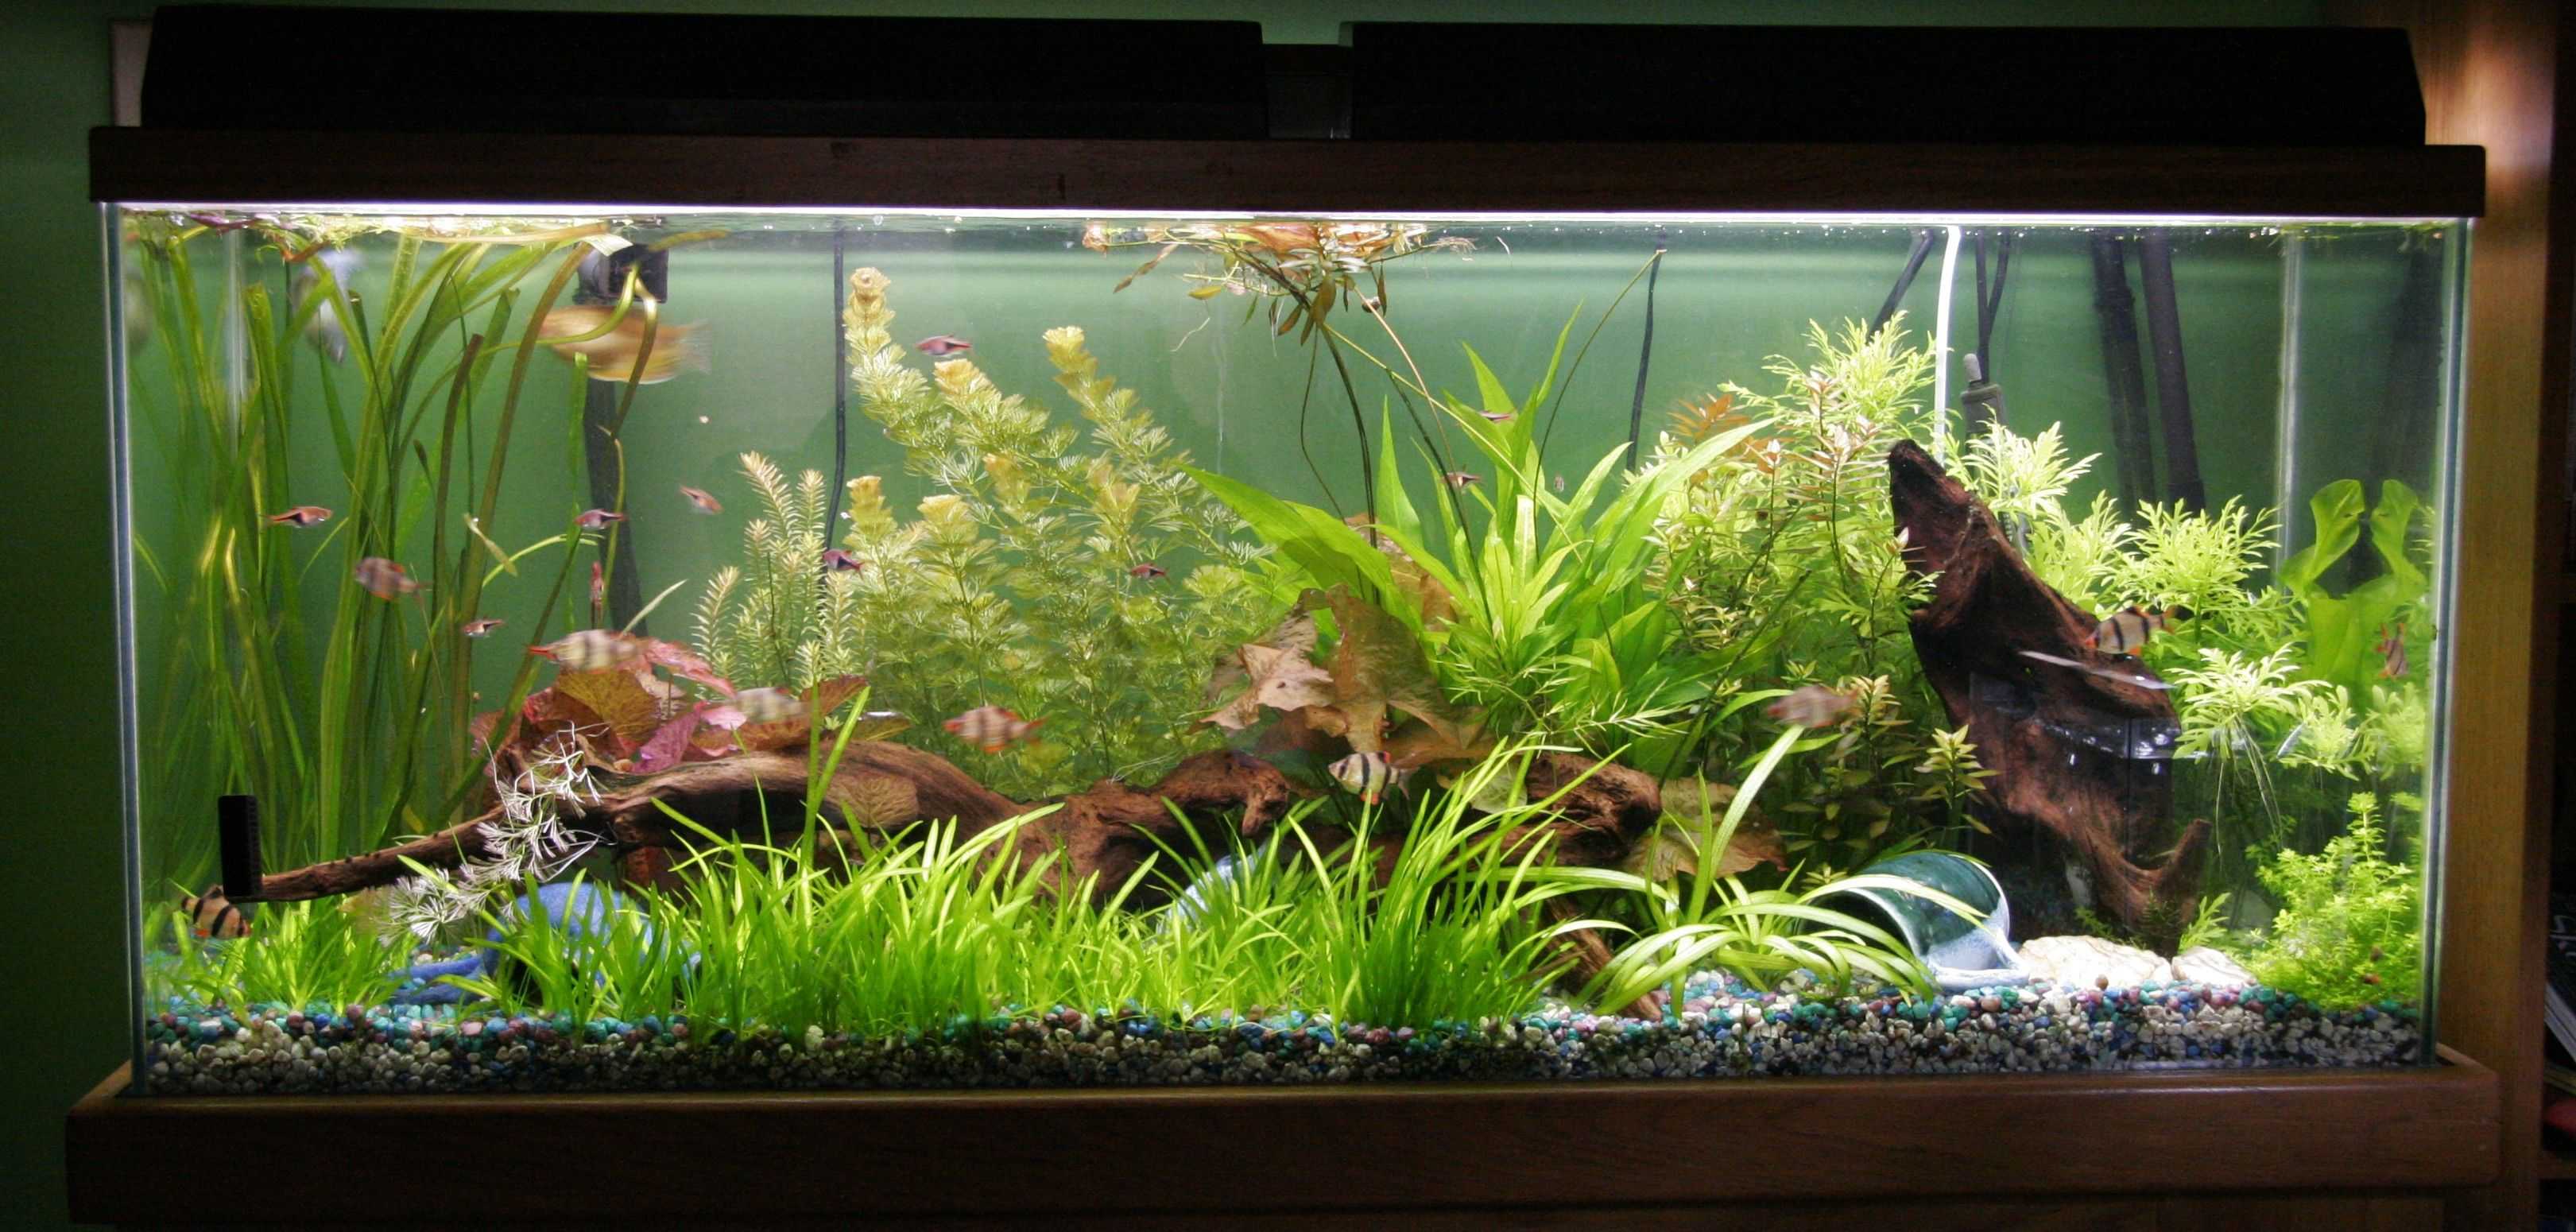 17 best images about freshwater aquariums on pinterest animaux live plants and aquarium - Freshwater Aquarium Design Ideas